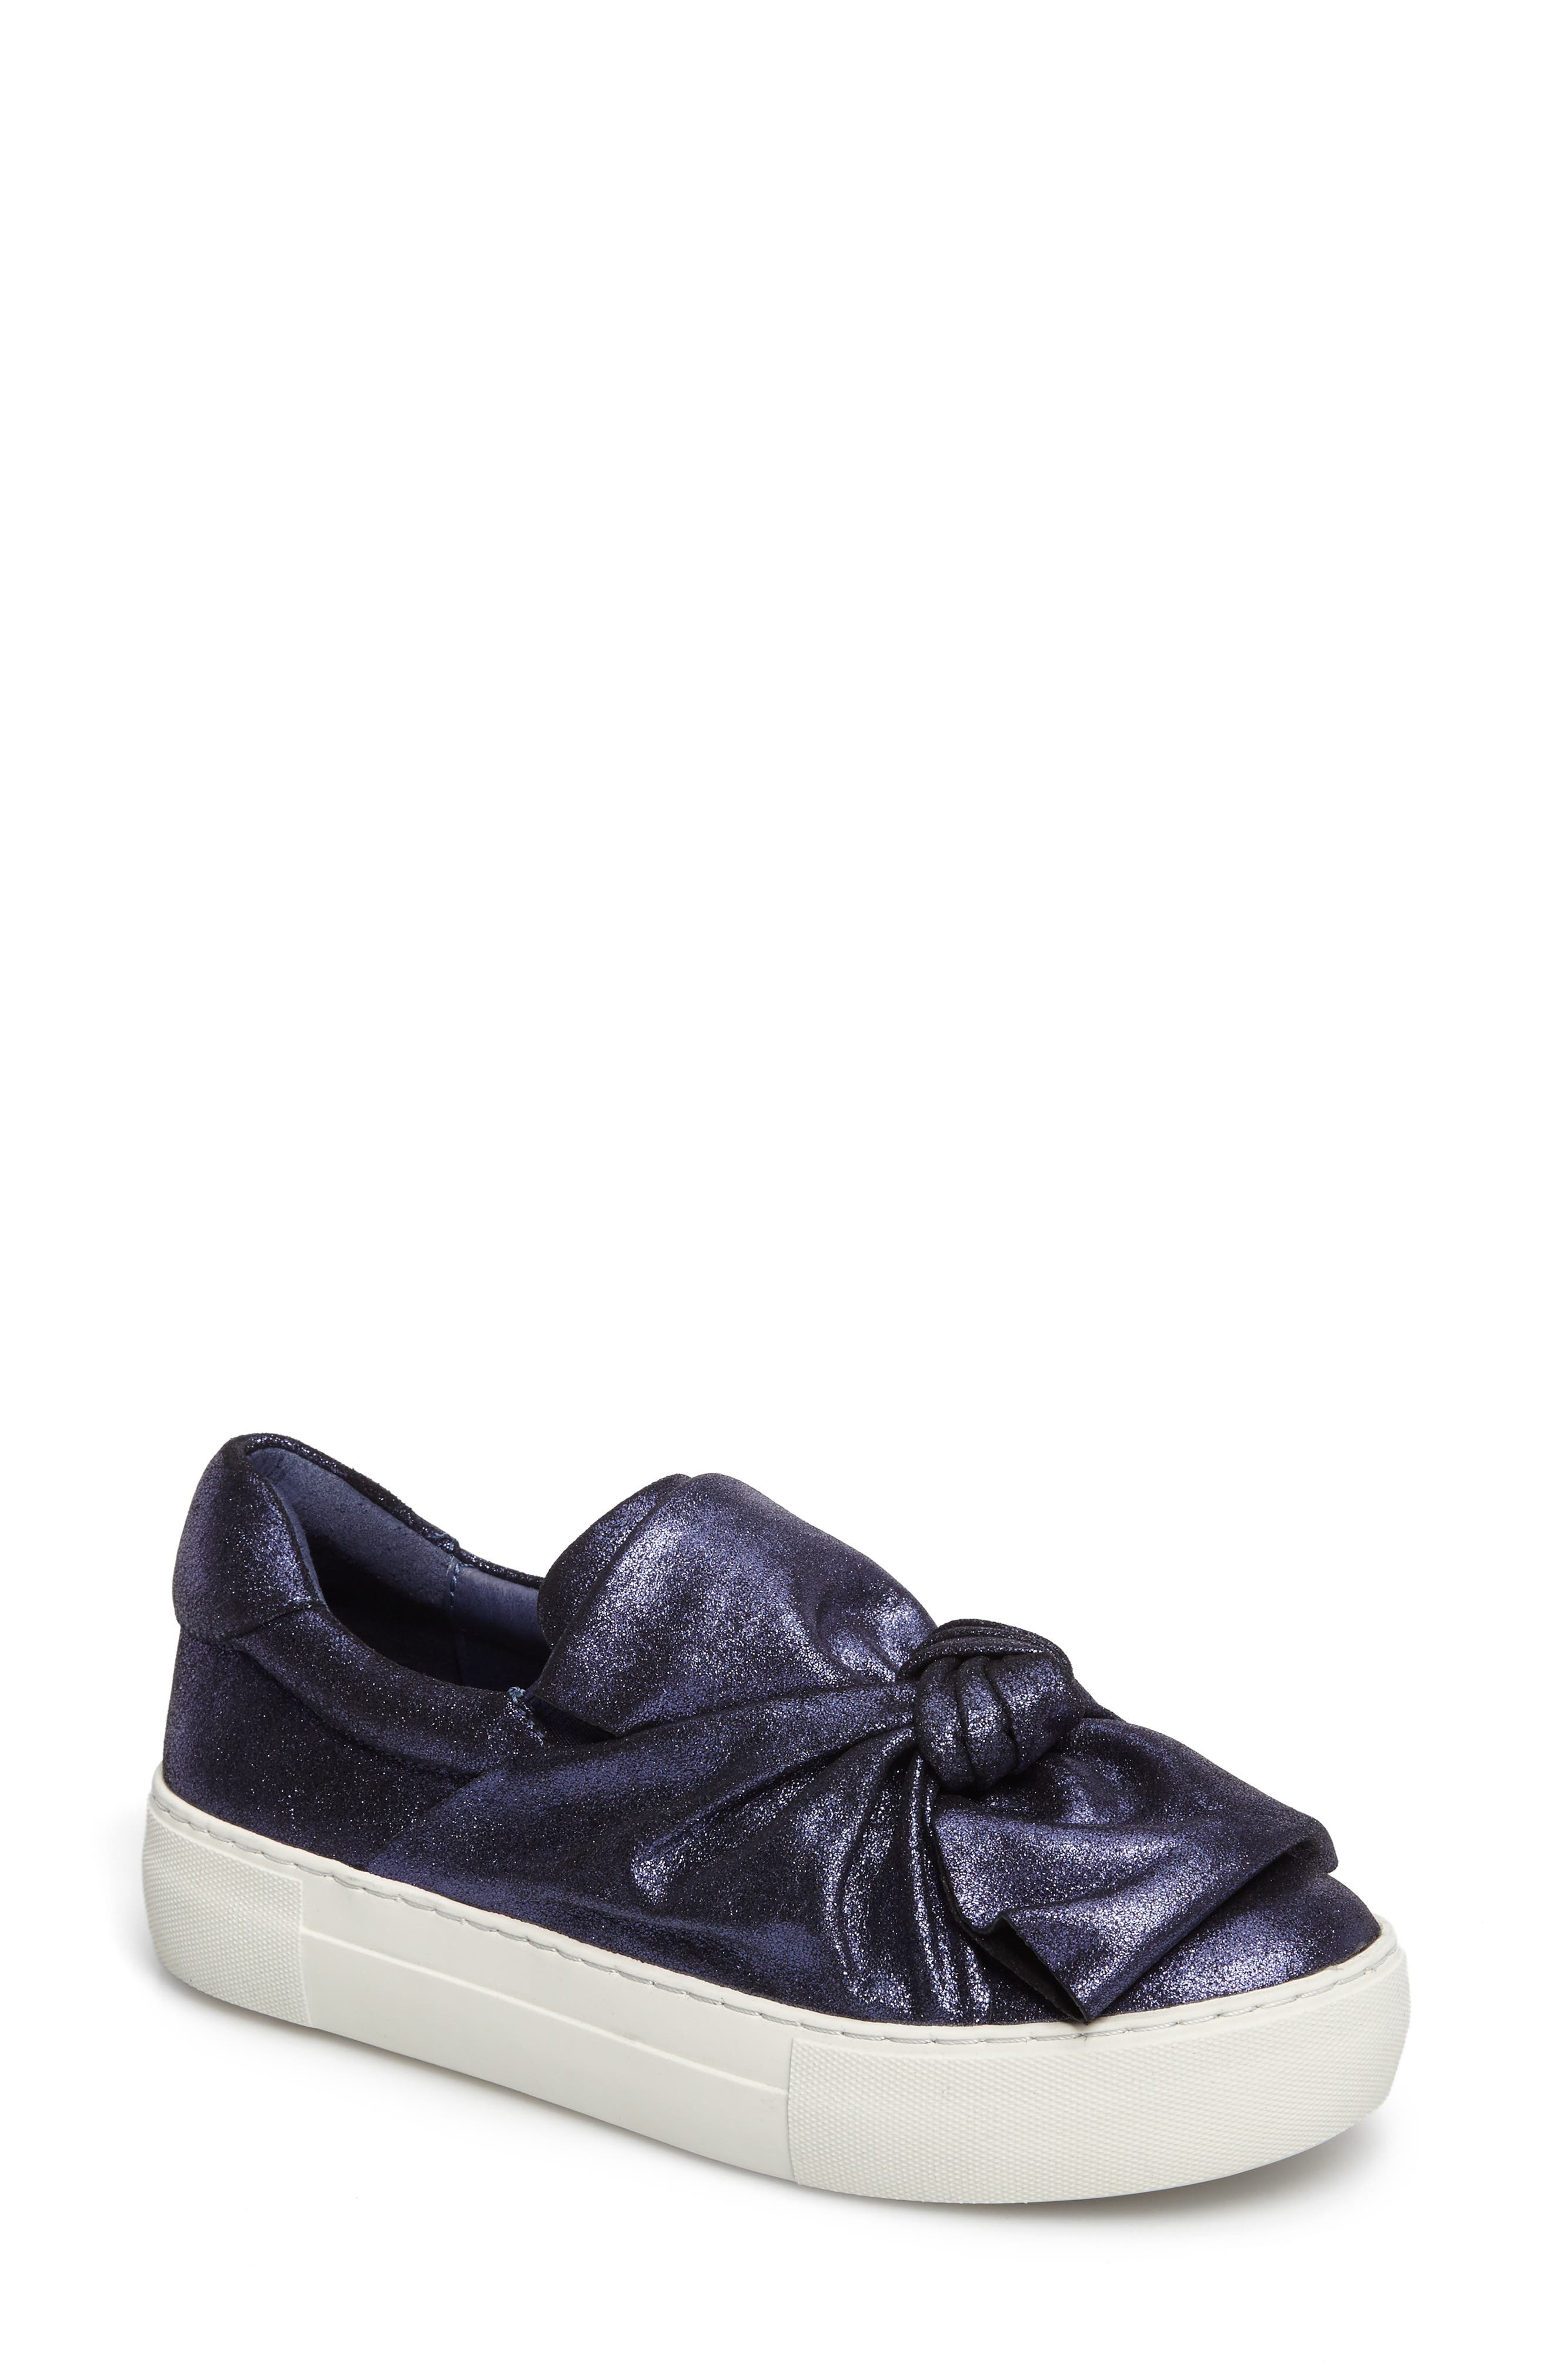 Audra Slip-On Sneaker,                         Main,                         color, Navy Leather